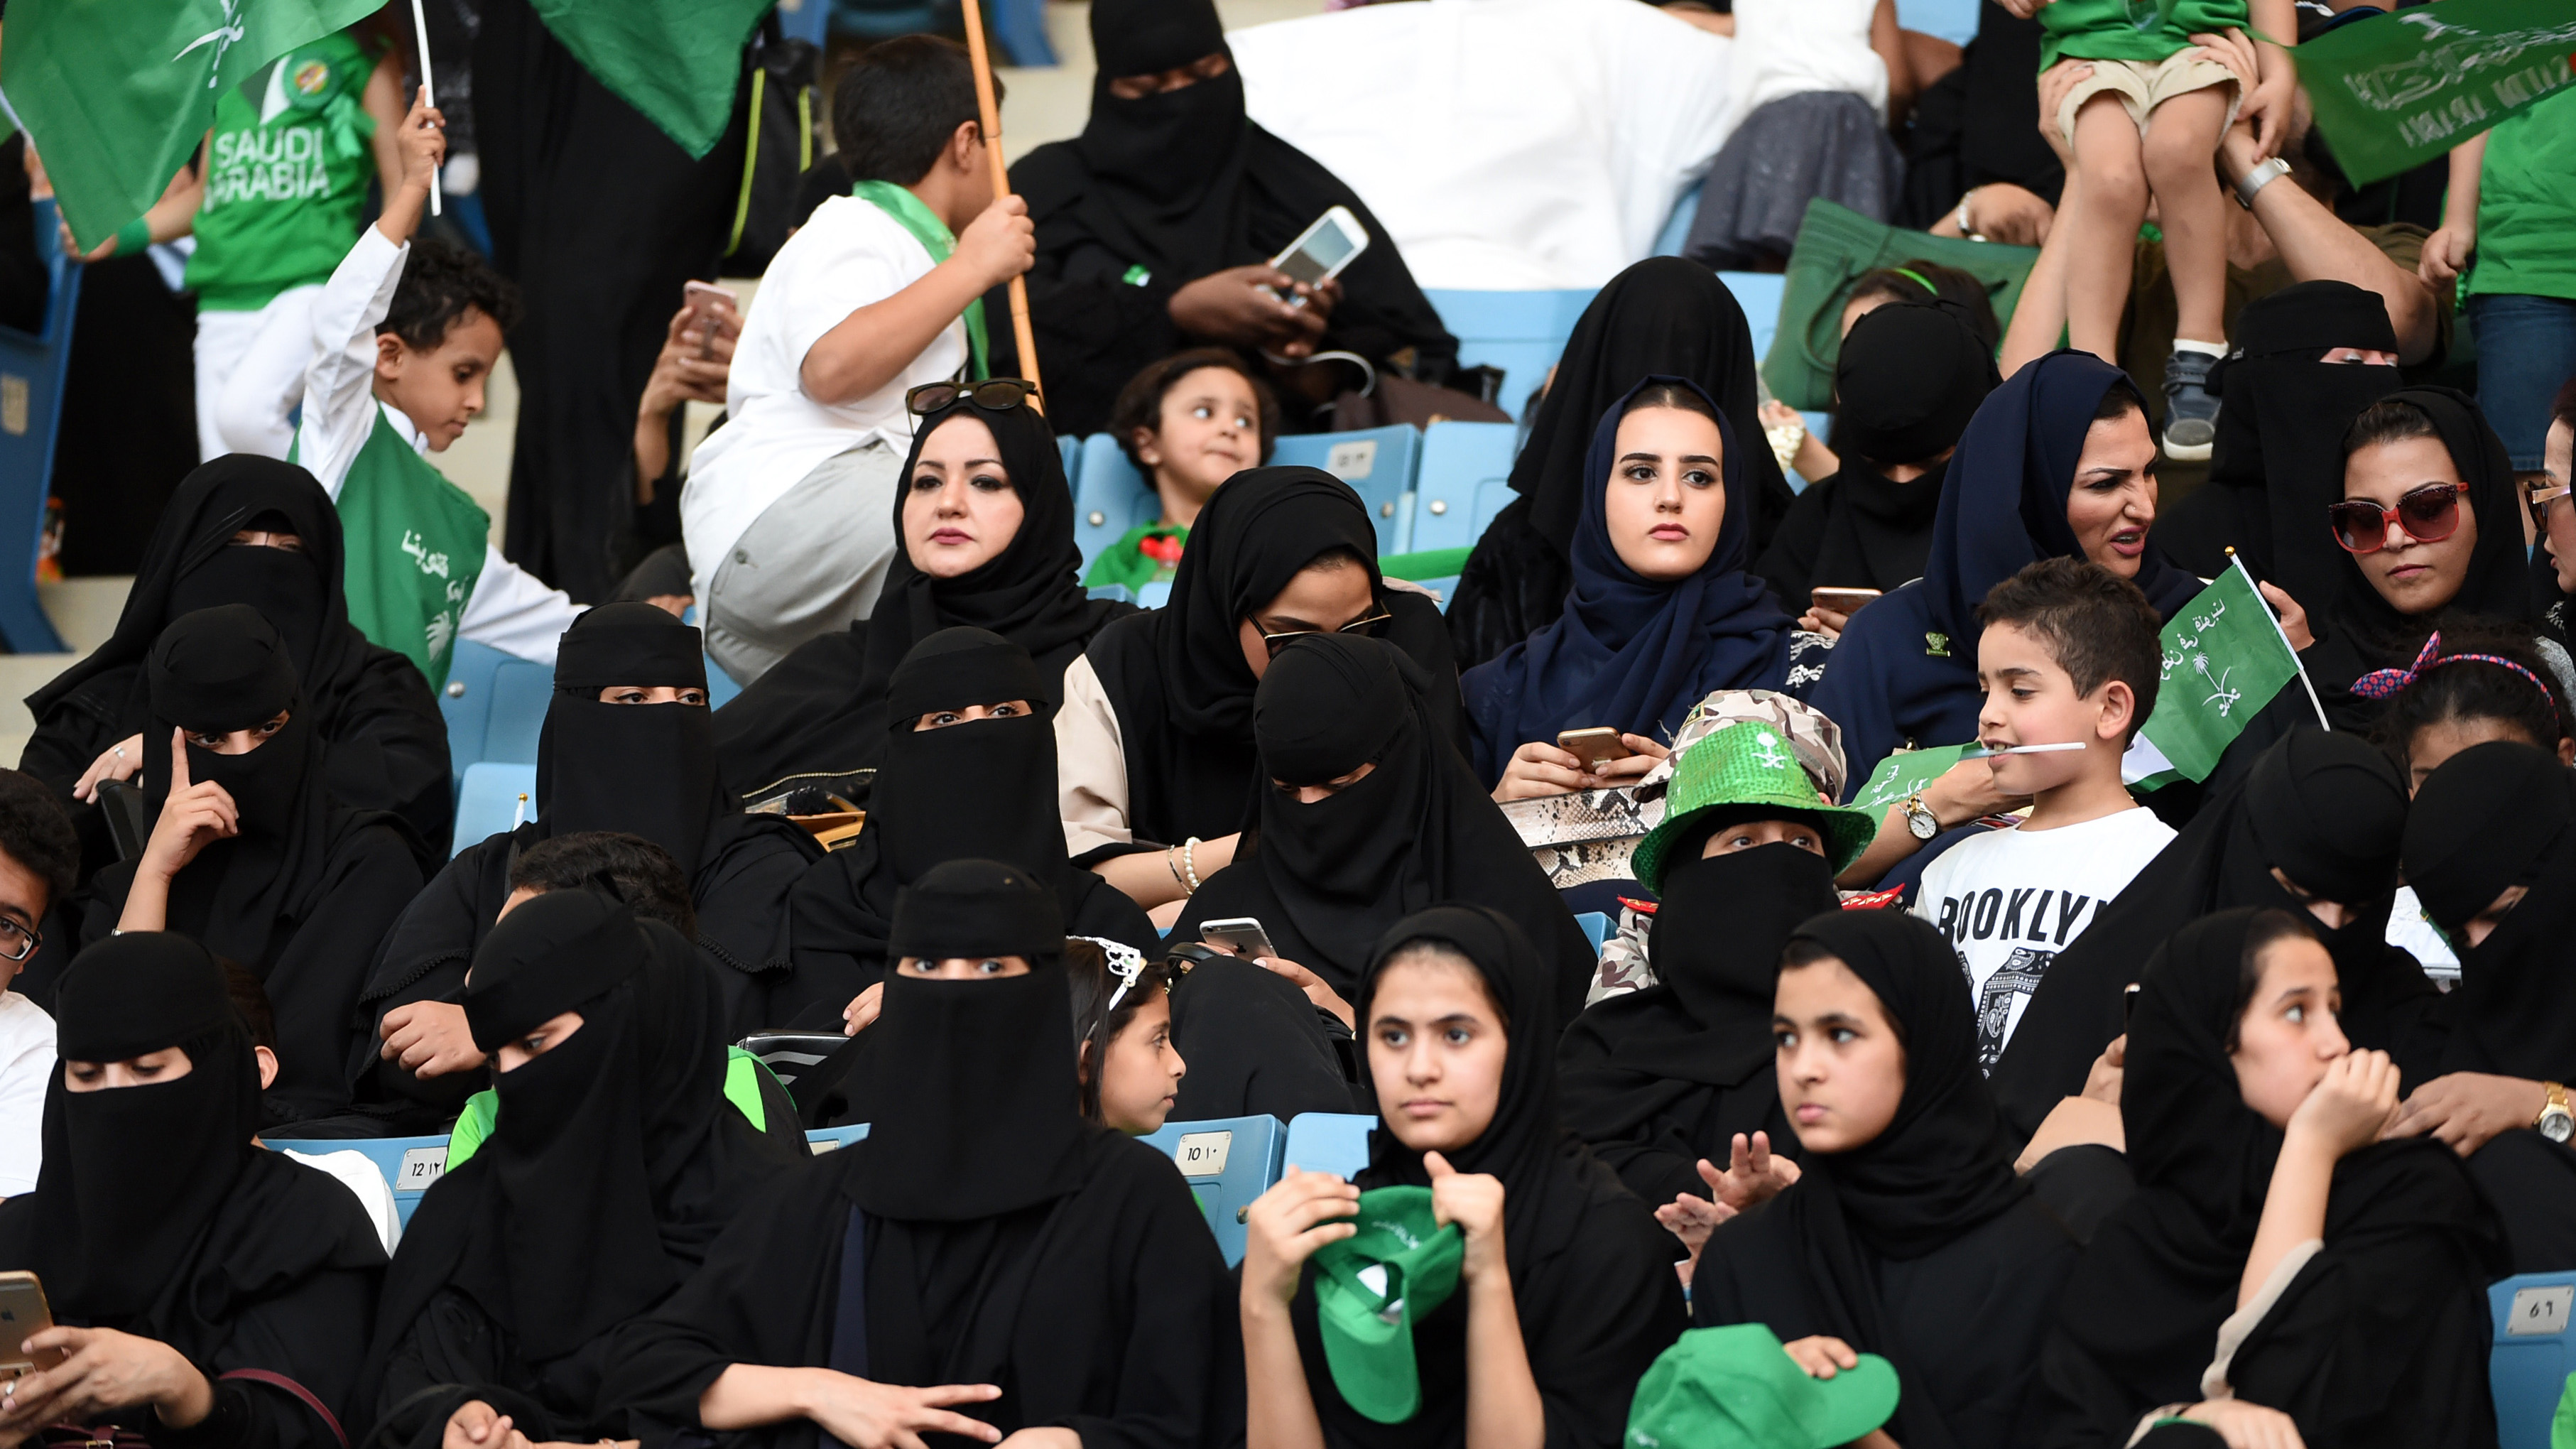 Saudi women turn out for national celebration in historic first